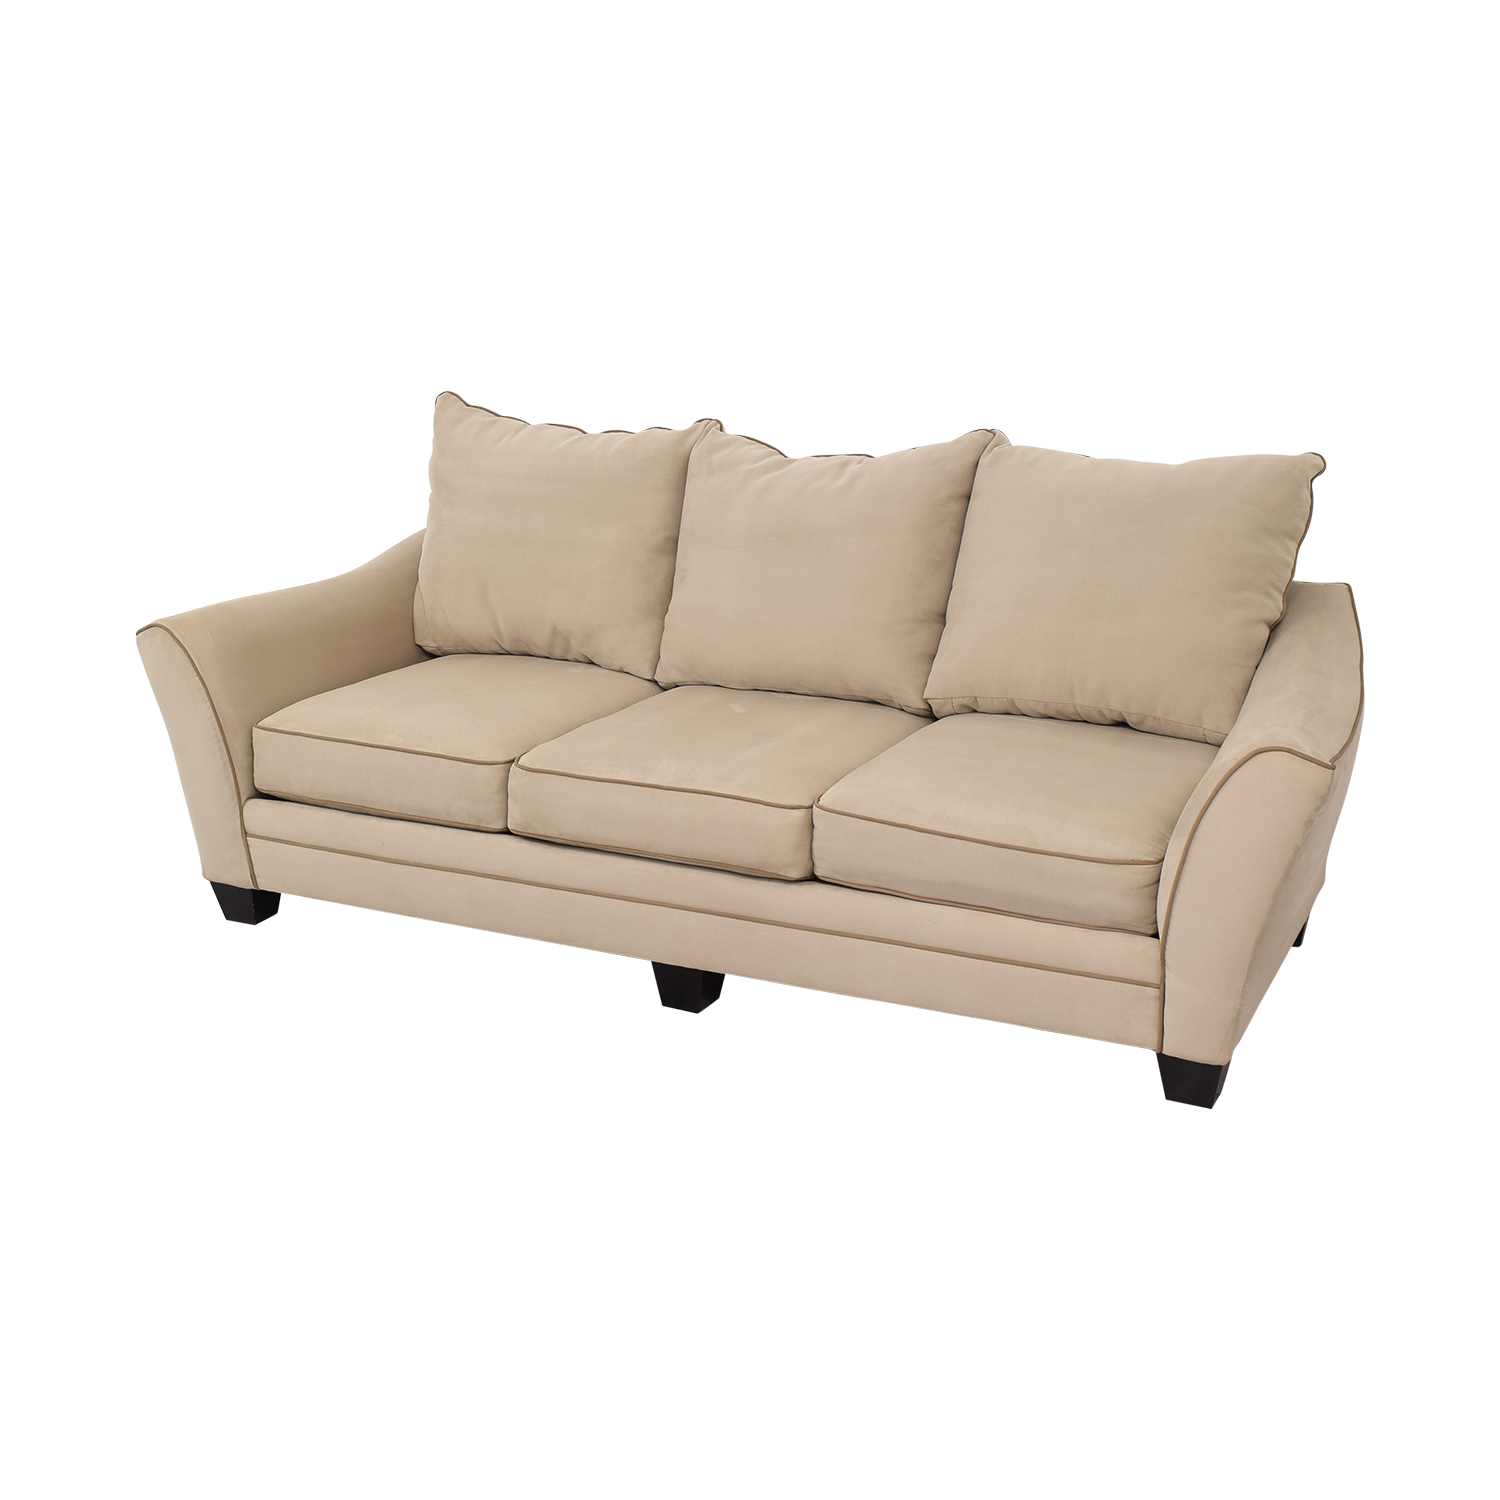 buy Raymour & Flanigan Foresthill Sofa Raymour & Flanigan